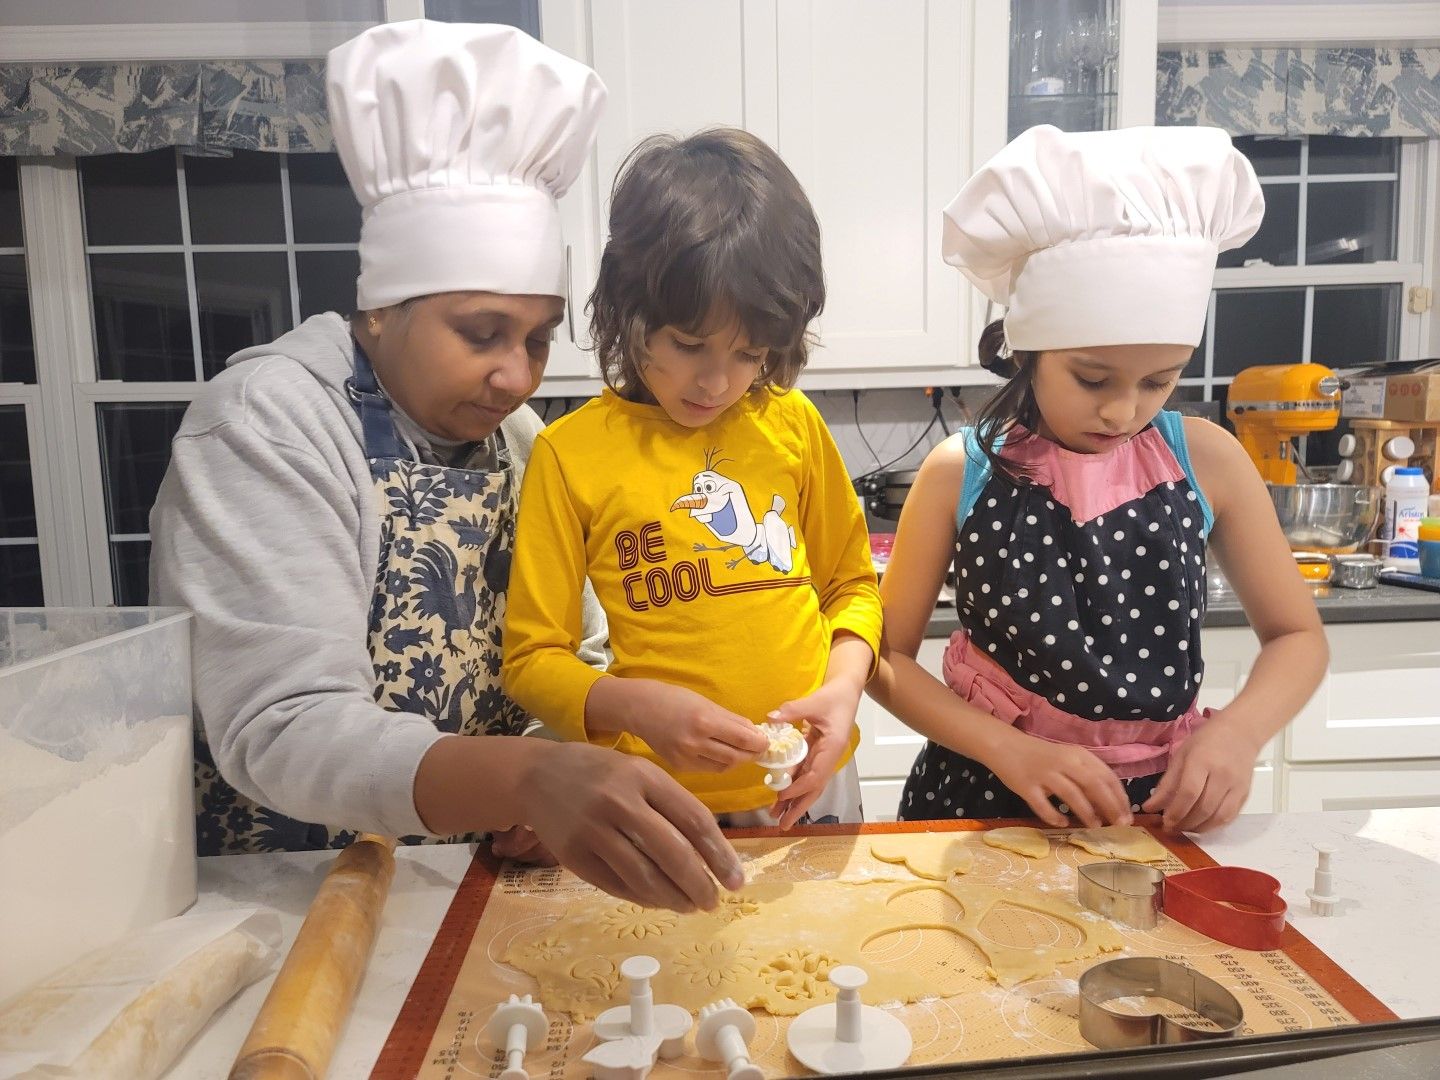 kids and grandmother cooking in kitchen